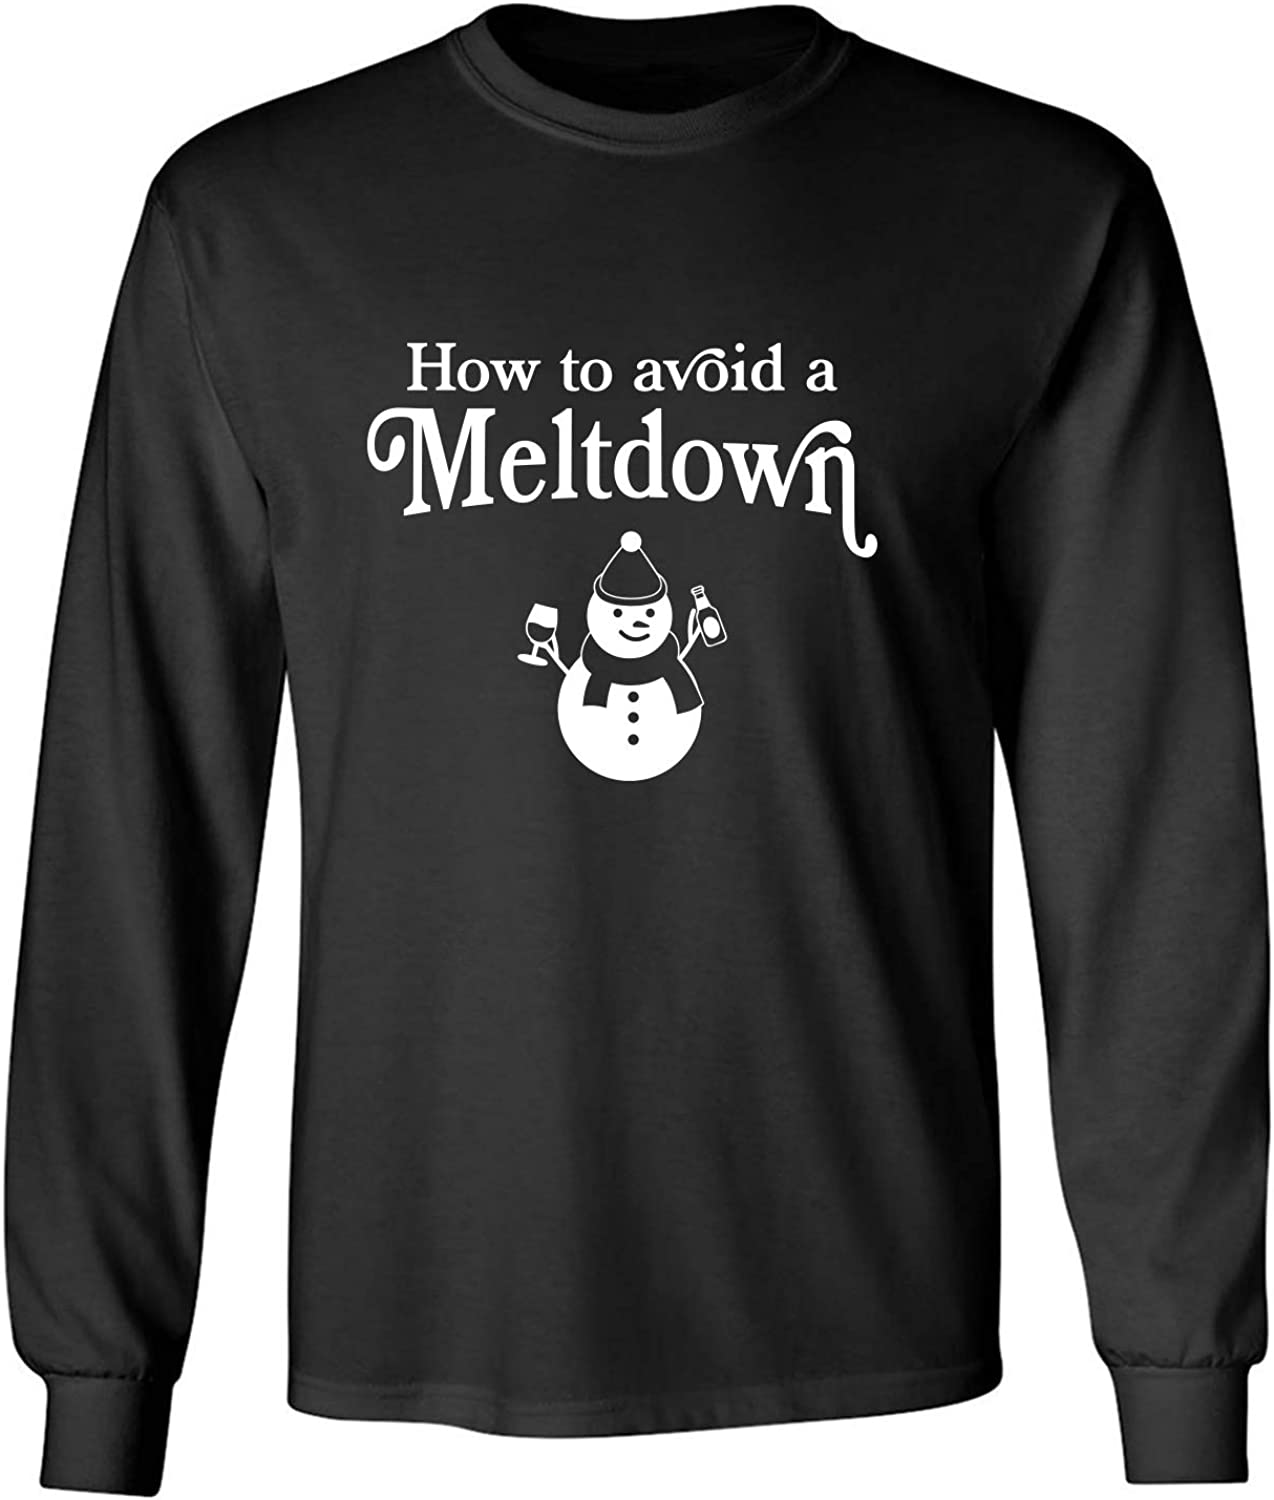 How to Avoid A Meltdown Adult Long Sleeve T-Shirt in Black - XXXX-Large